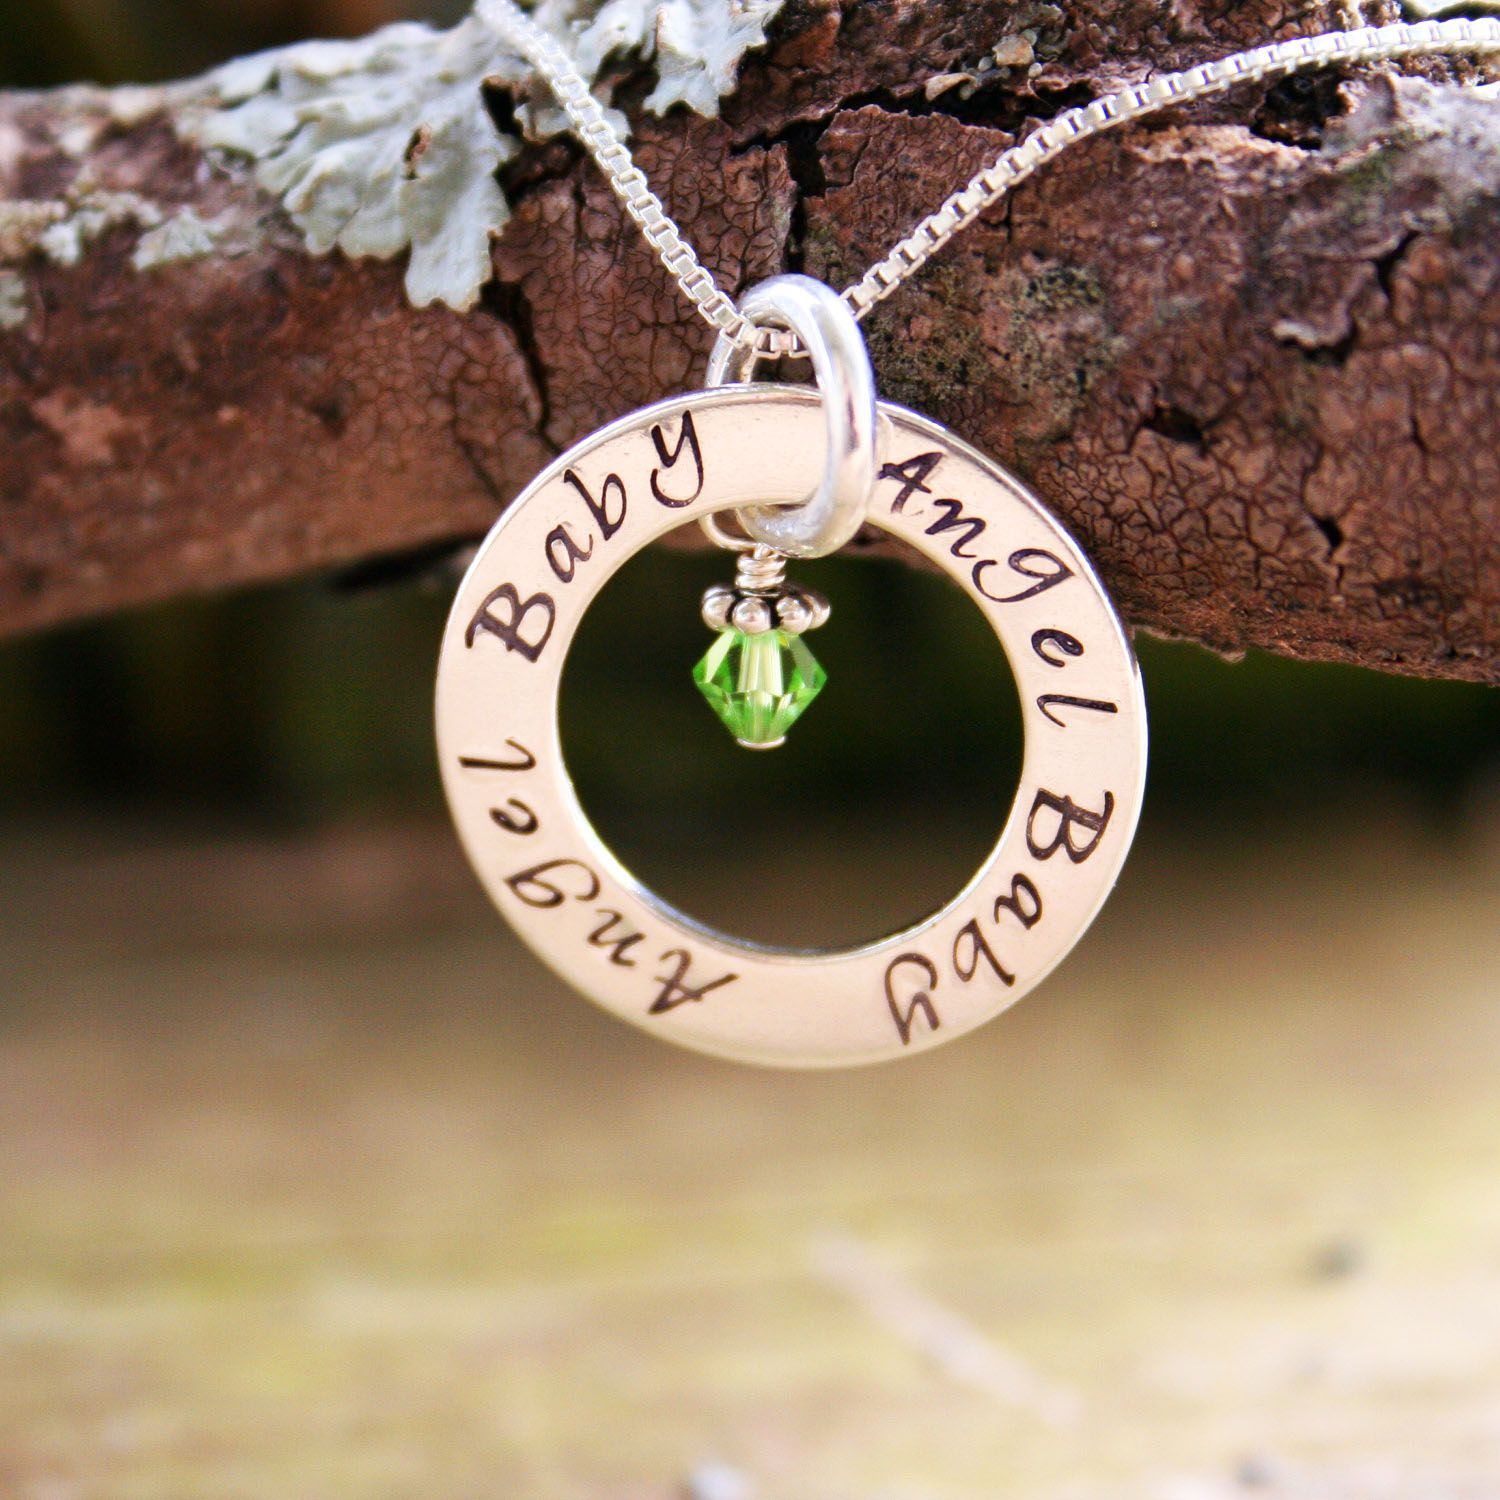 Angel baby miscarriage affirmation necklace angel babies angel baby miscarriage affirmation necklace aloadofball Choice Image